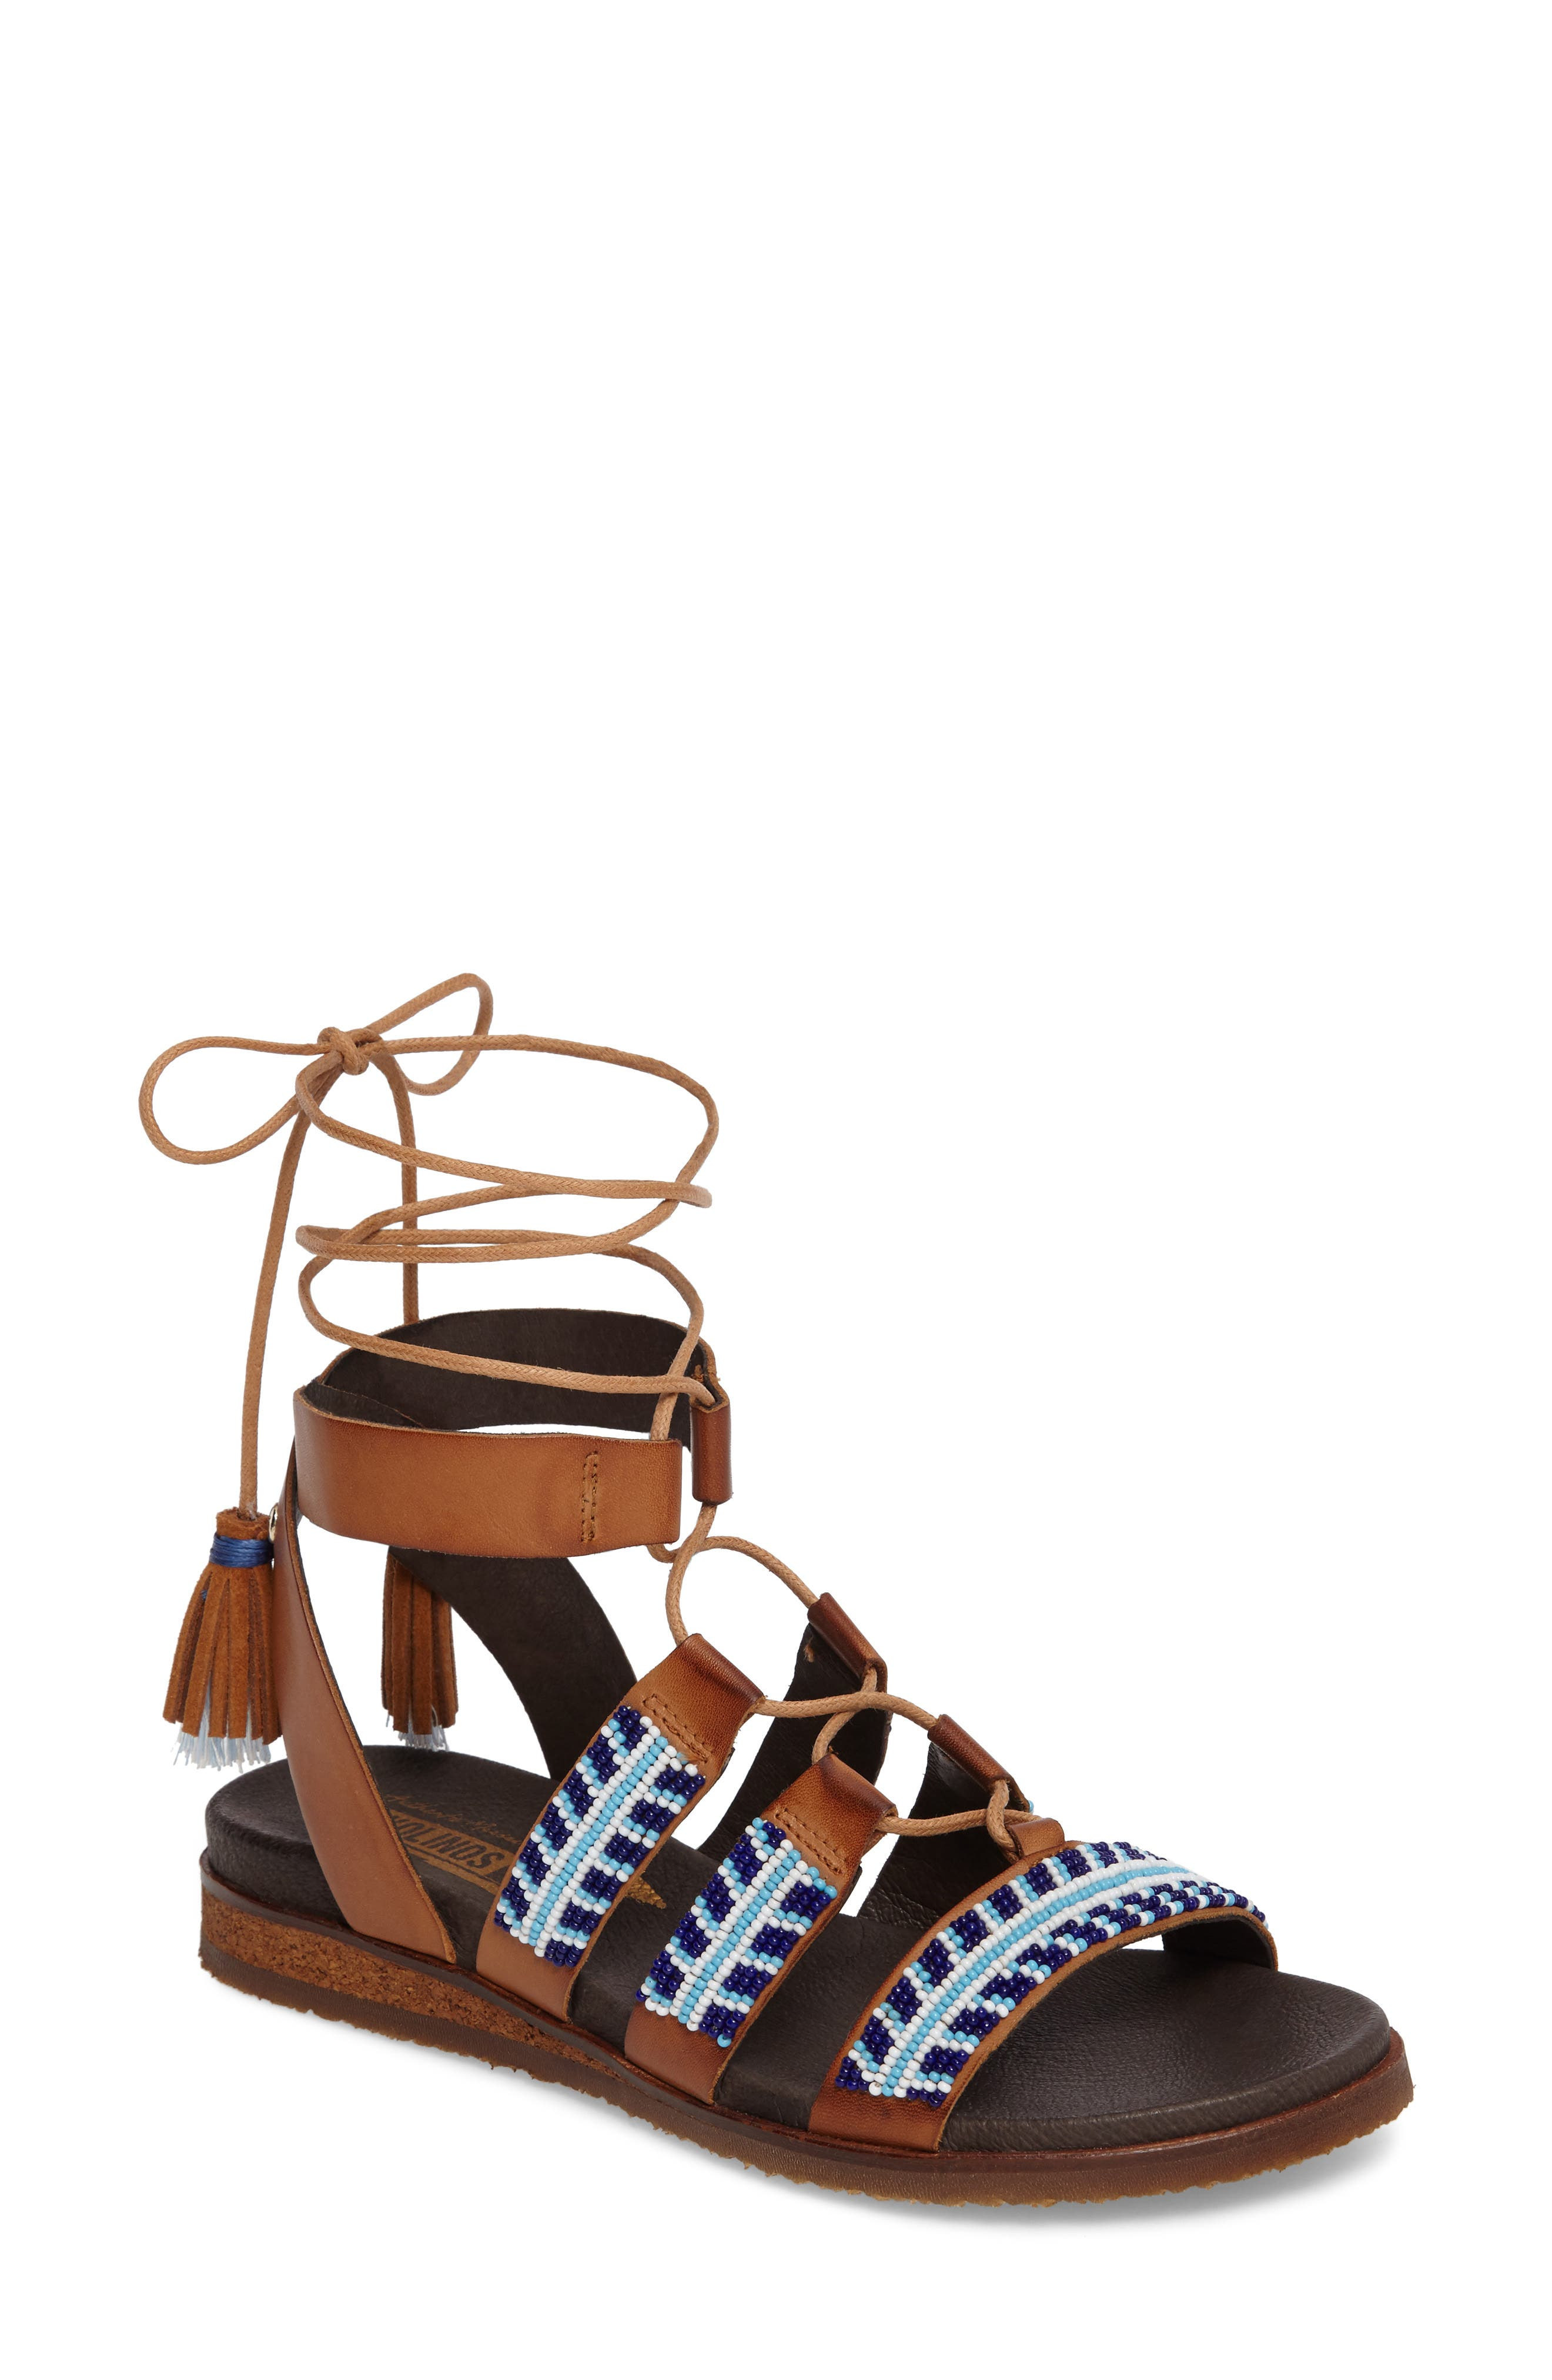 Alternate Image 1 Selected - PIKOLINOS Antillas Beaded Ghillie Sandal (Women)